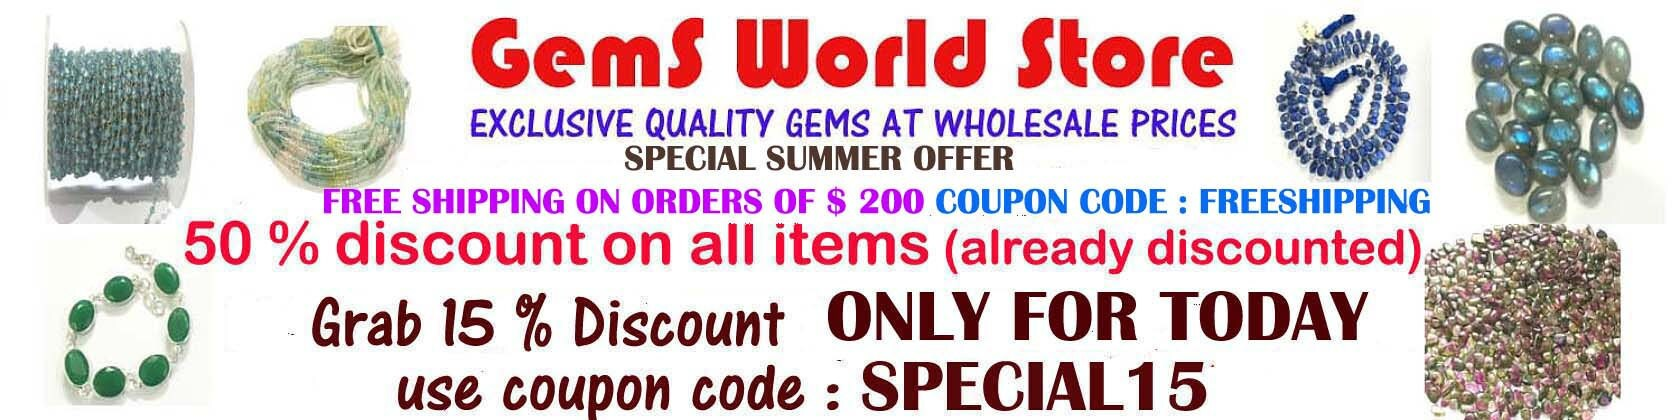 Exclusive quality gems at wholesale prices by gemsworldstore gemsworldstore fandeluxe